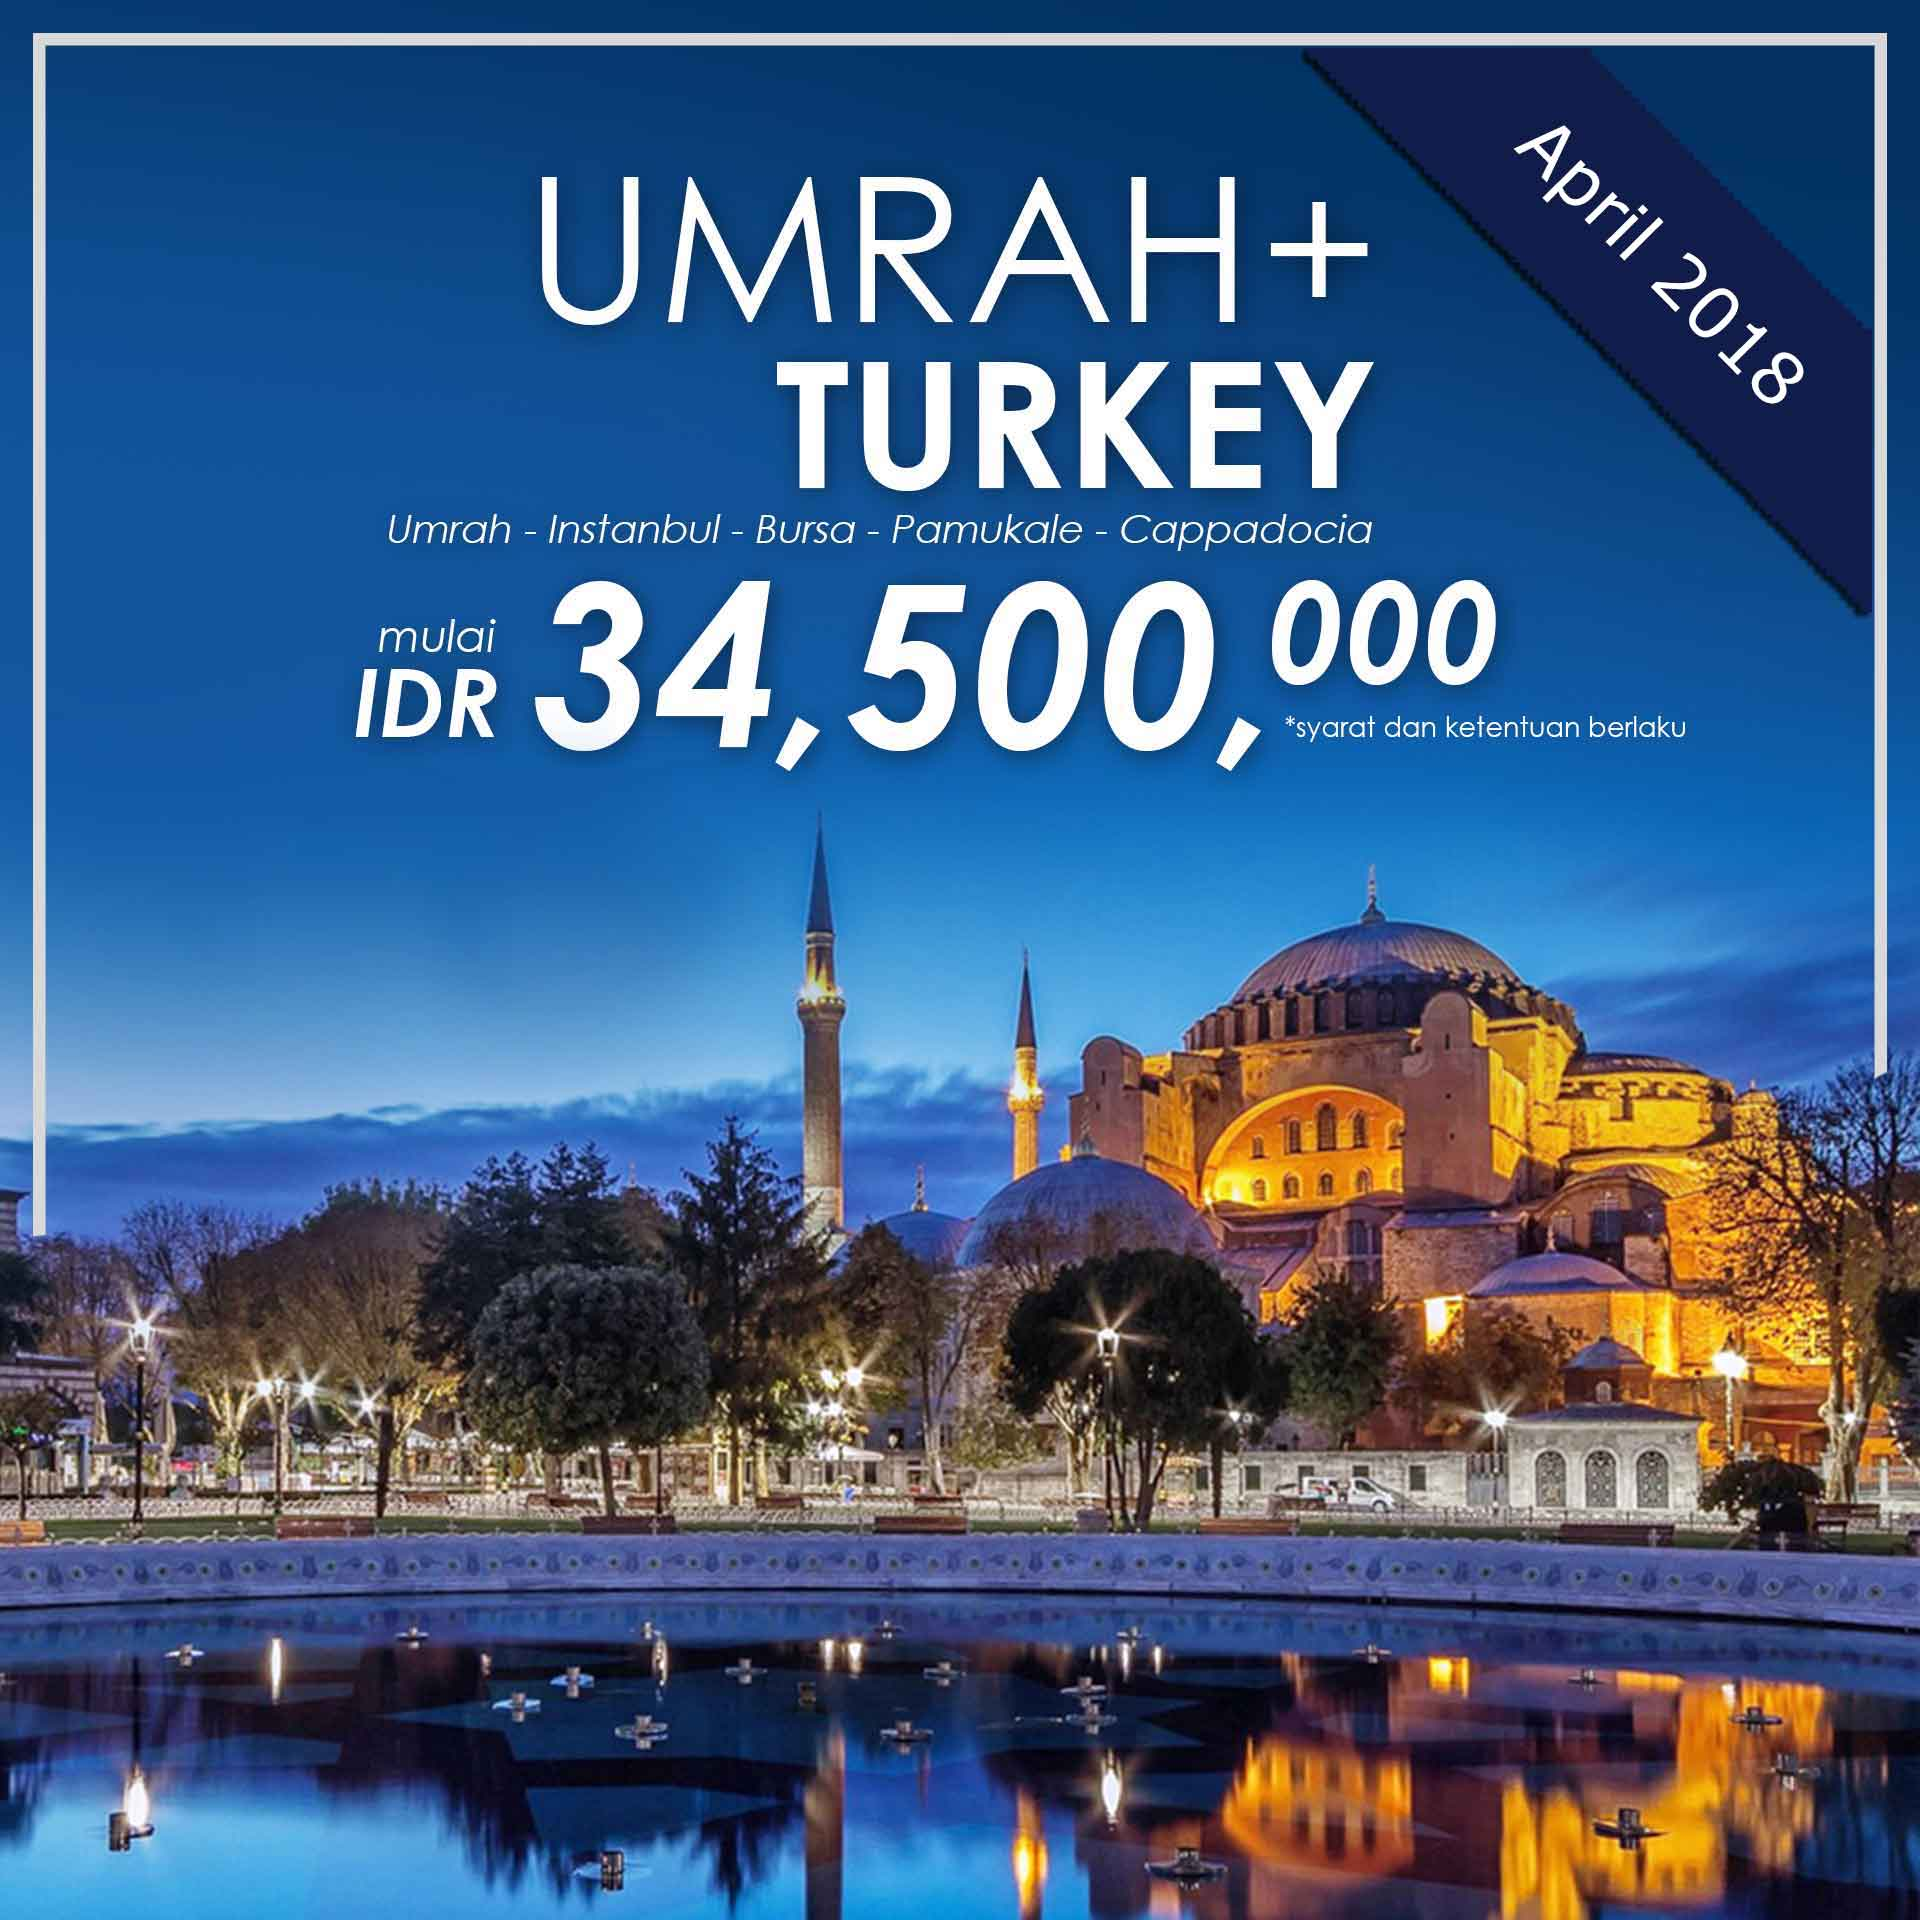 paket umroh plus, umroh plus, paket umroh plus turki april 2018, pt dream tour and travel